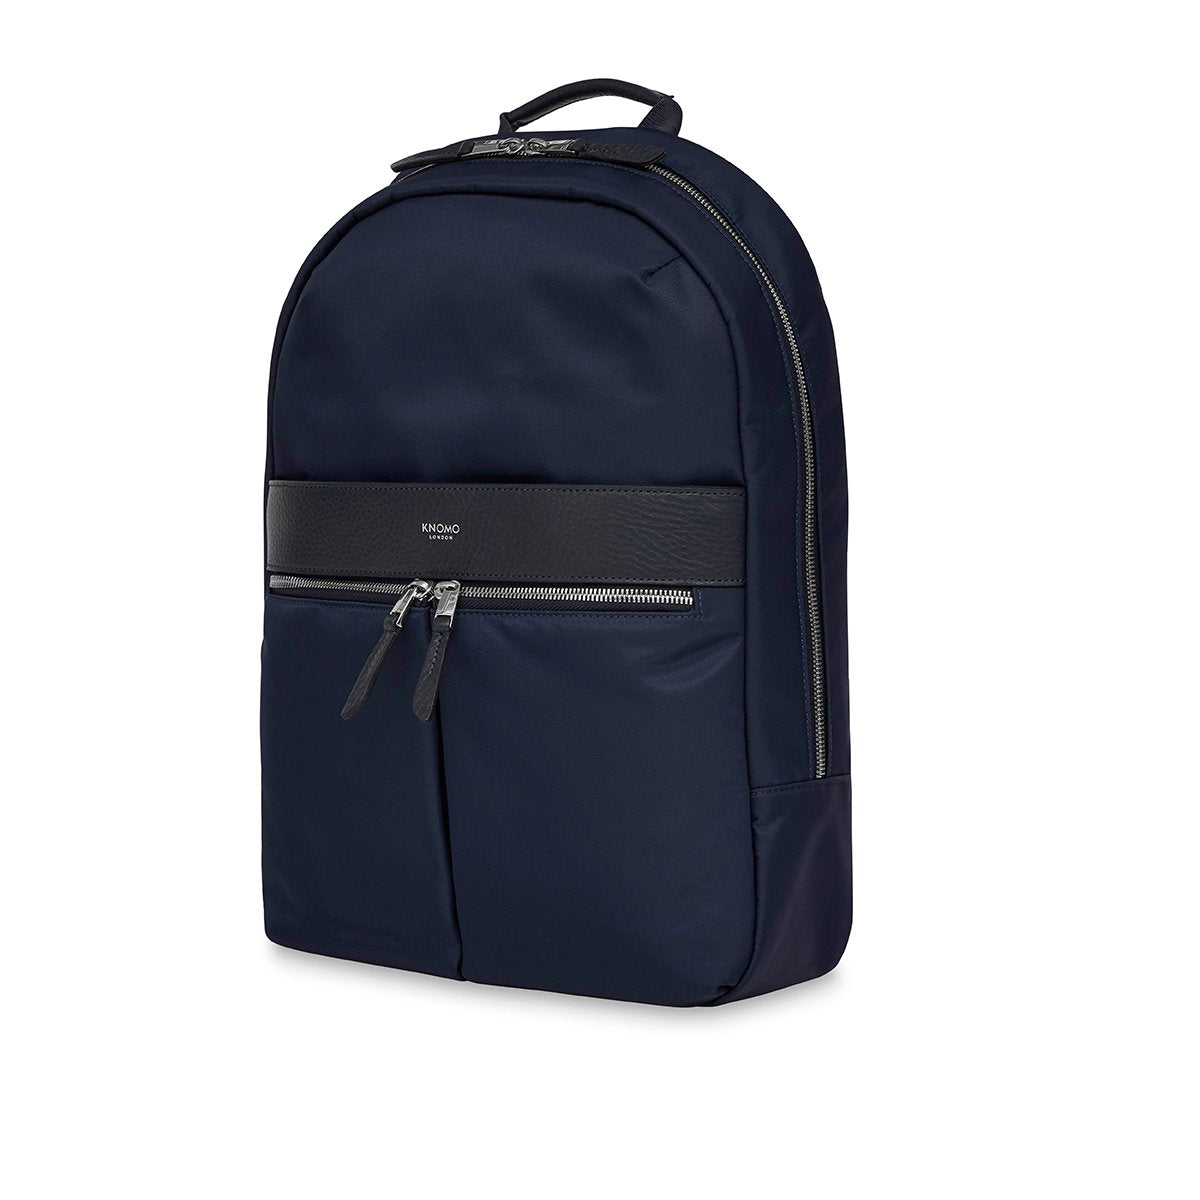 "Beauchamp Laptop Backpack - 14"" -  Dark Navy 